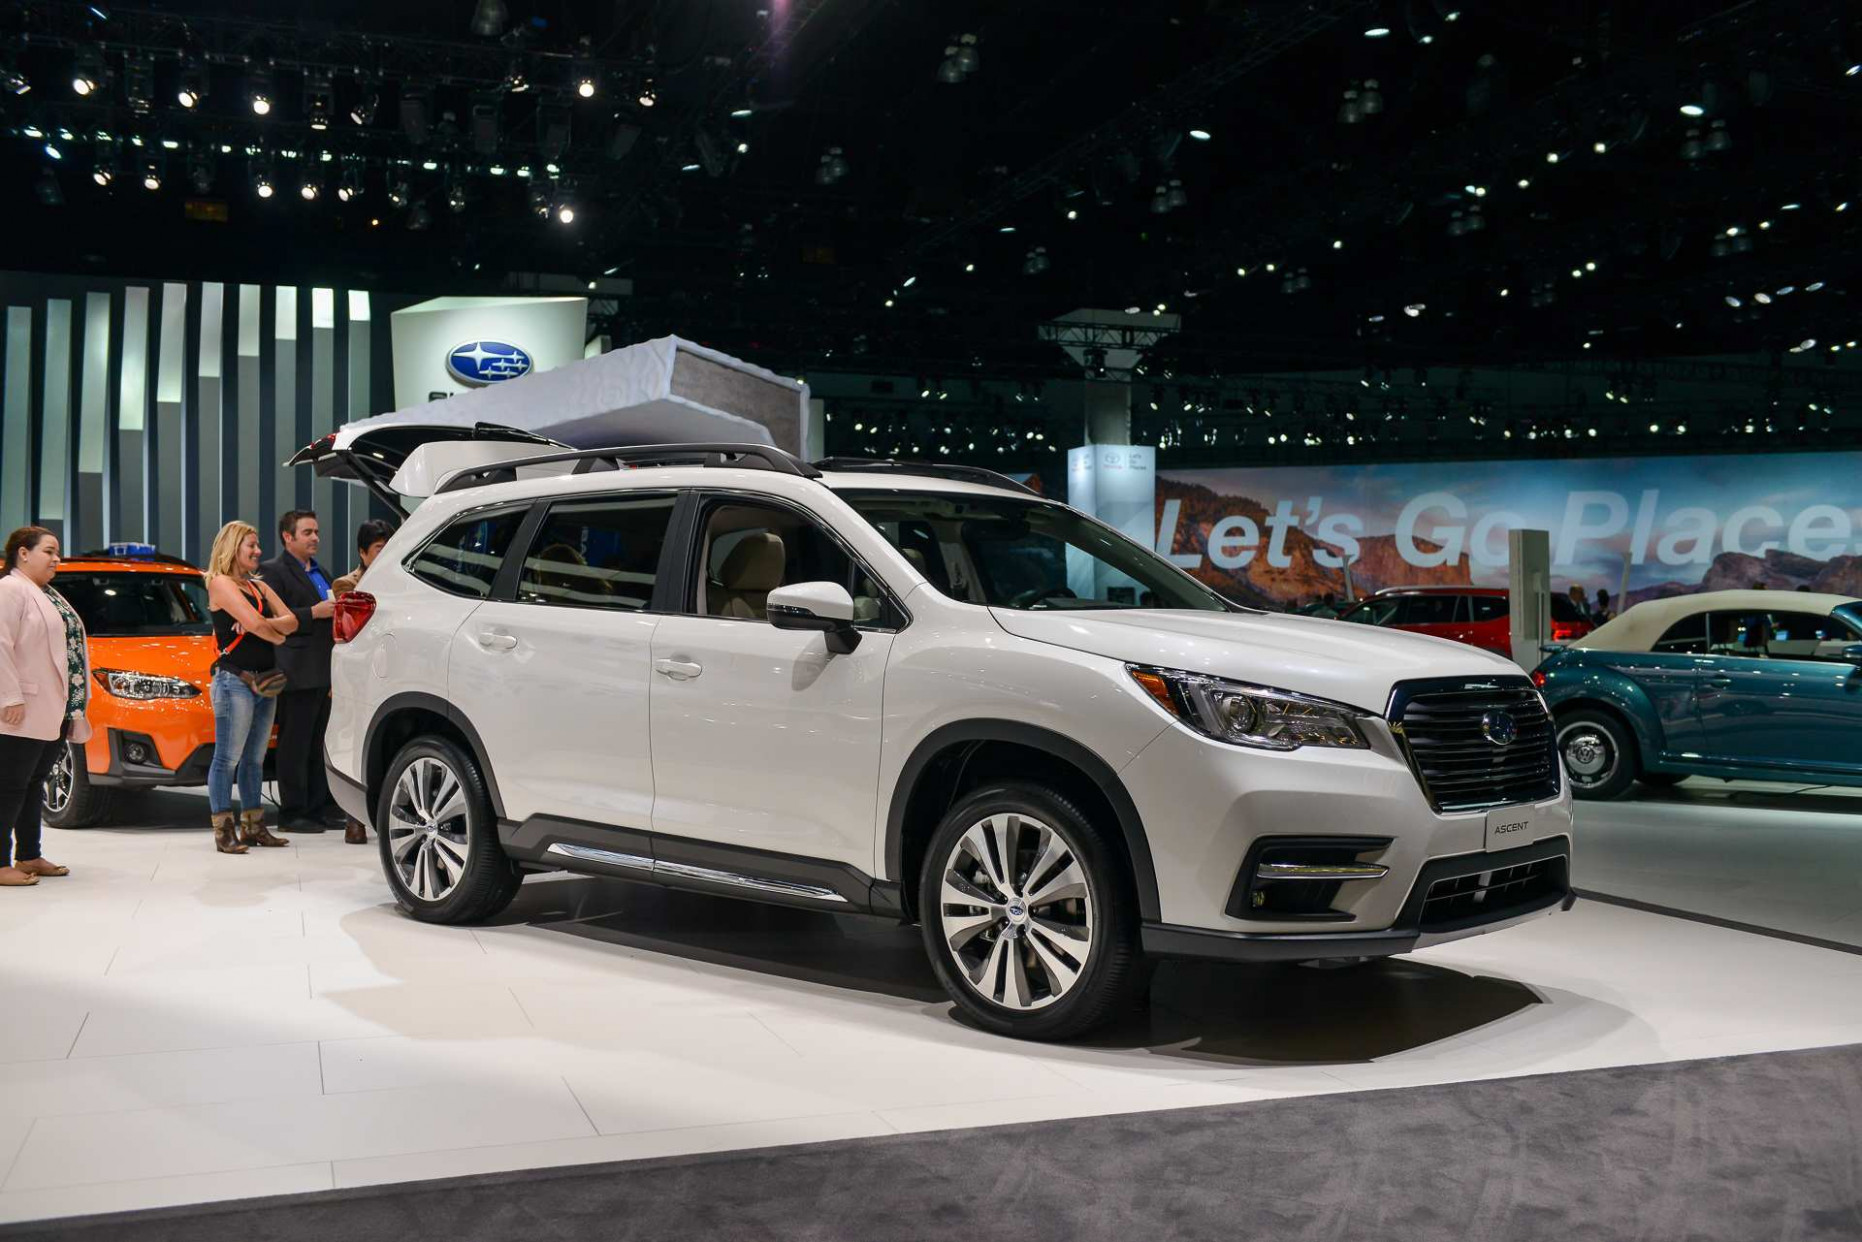 8 All New 8 Subaru Ascent Gas Mileage Redesign and Concept by ...